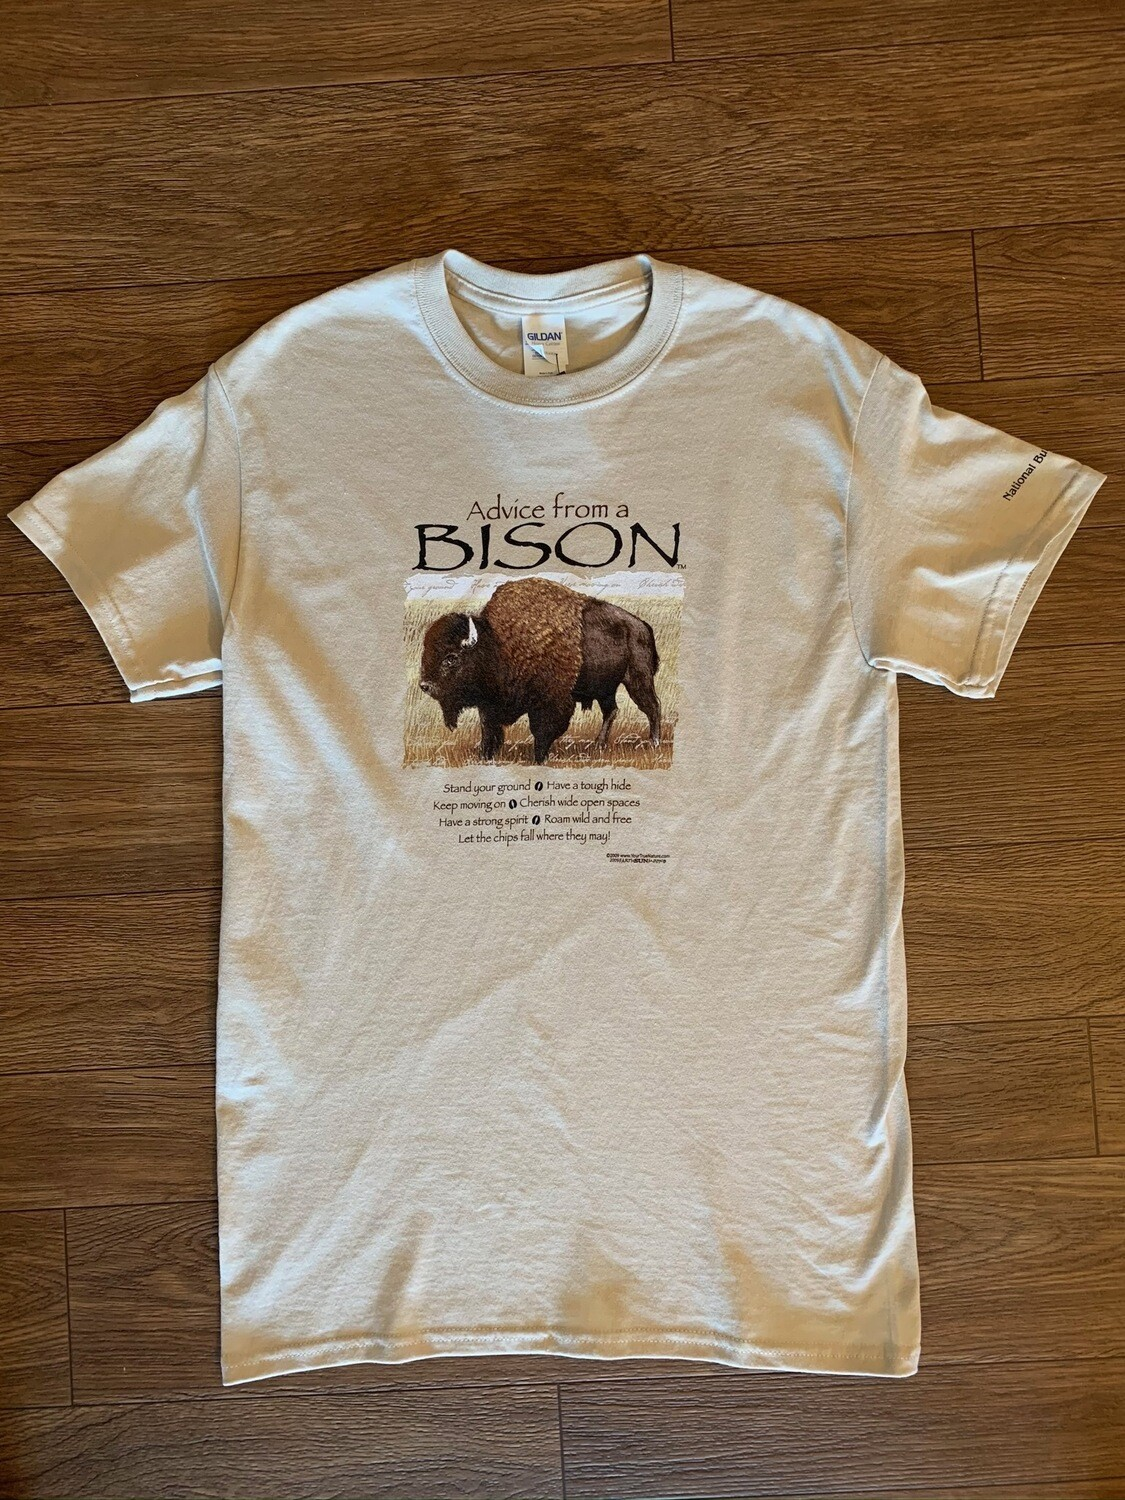 Advice from a Bison T-Shirt